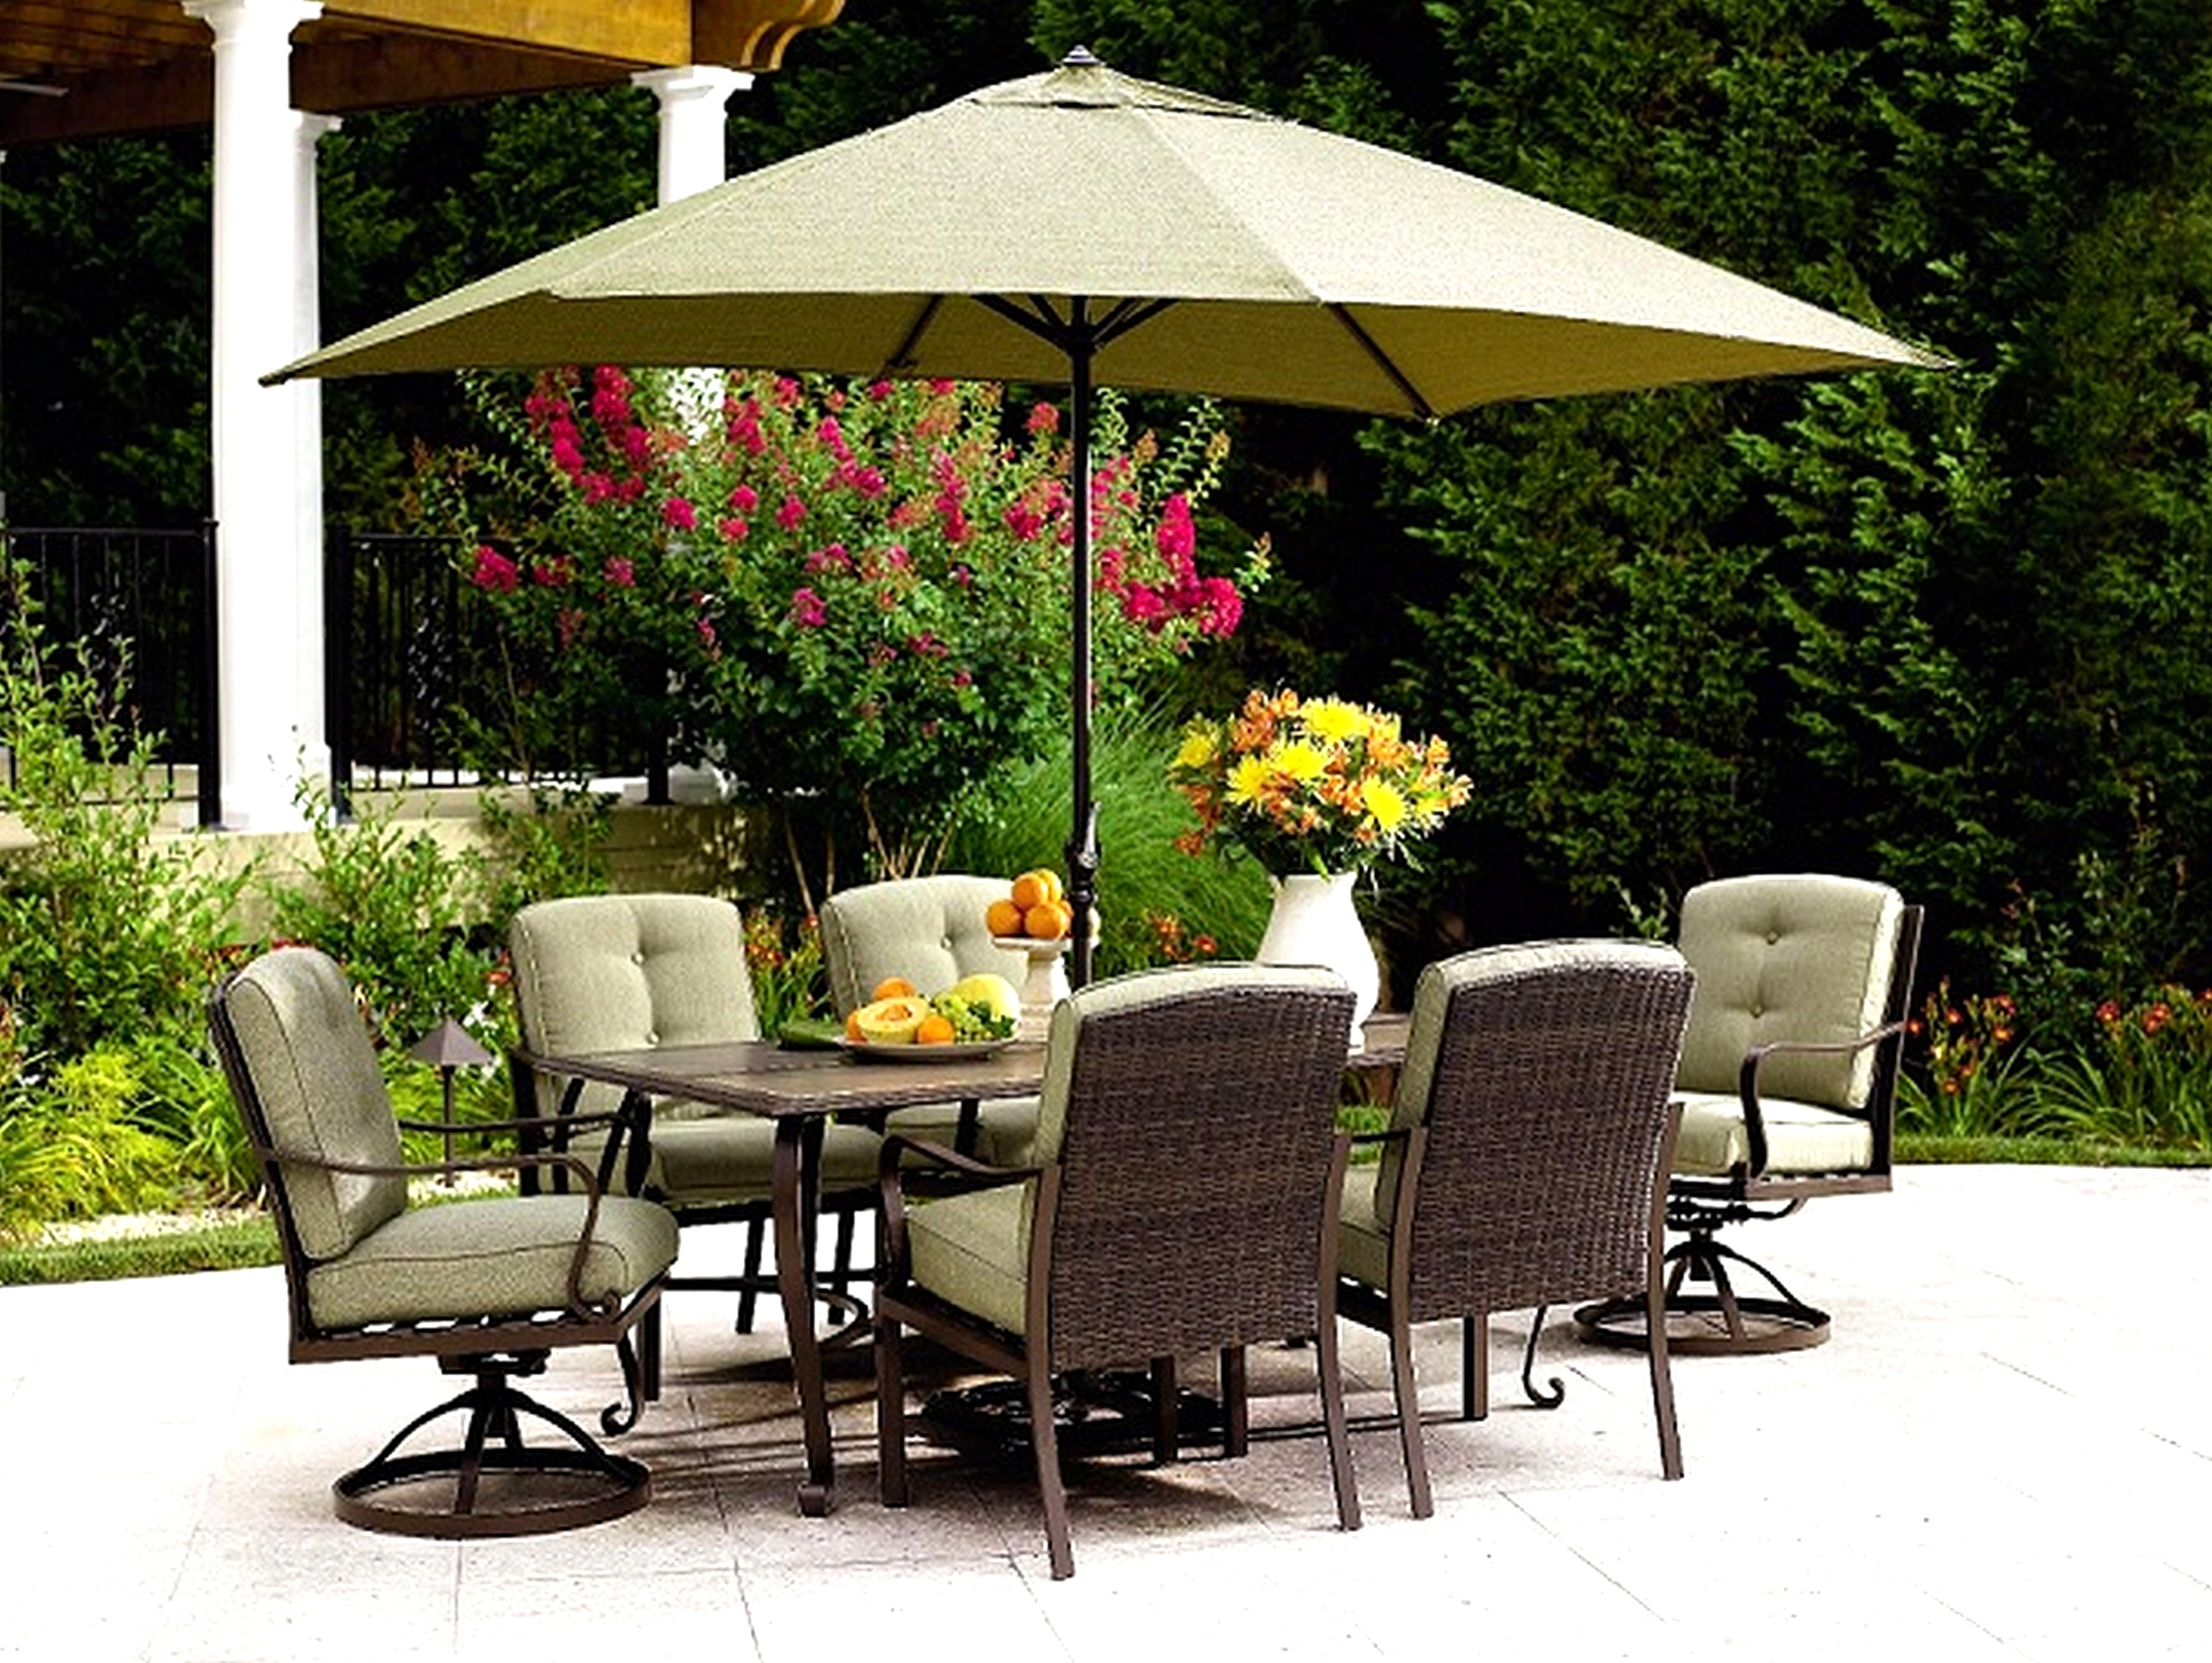 Patio Umbrellas For Bar Height Tables With Regard To Trendy 25 Awesome Patio Umbrella For Bar Height Table (View 7 of 20)